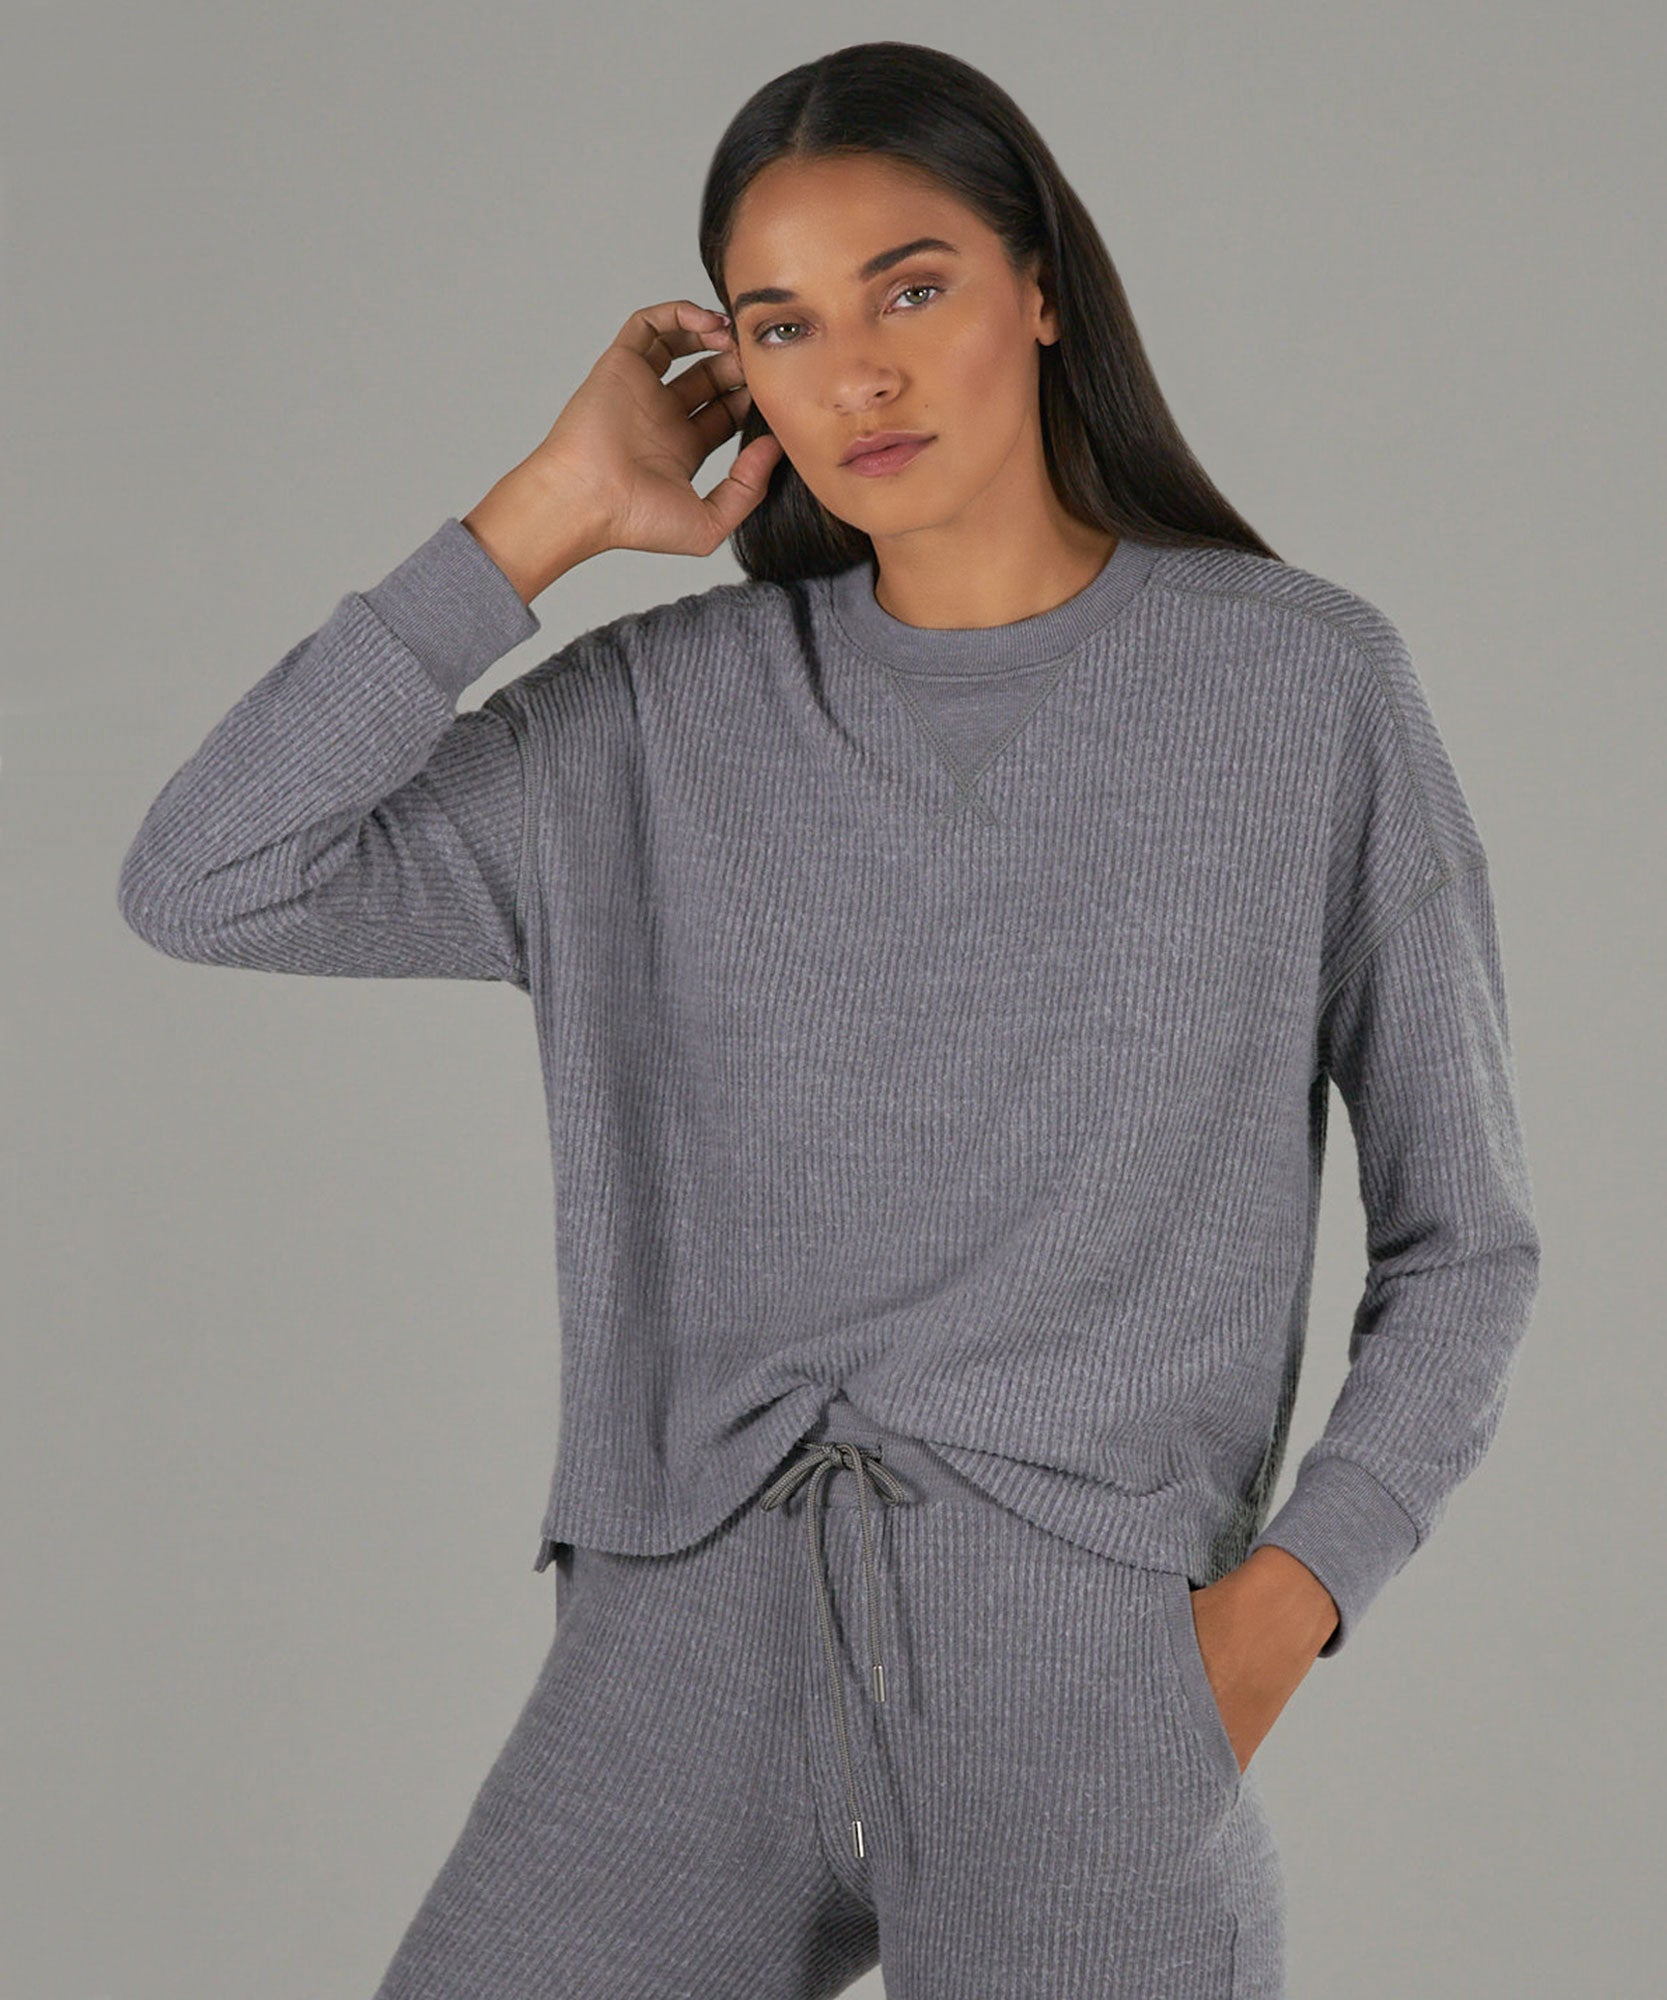 Heather Grey Waffle Crew Neck Sweatshirt - Women's Sweatshirt by ATM Anthony Thomas